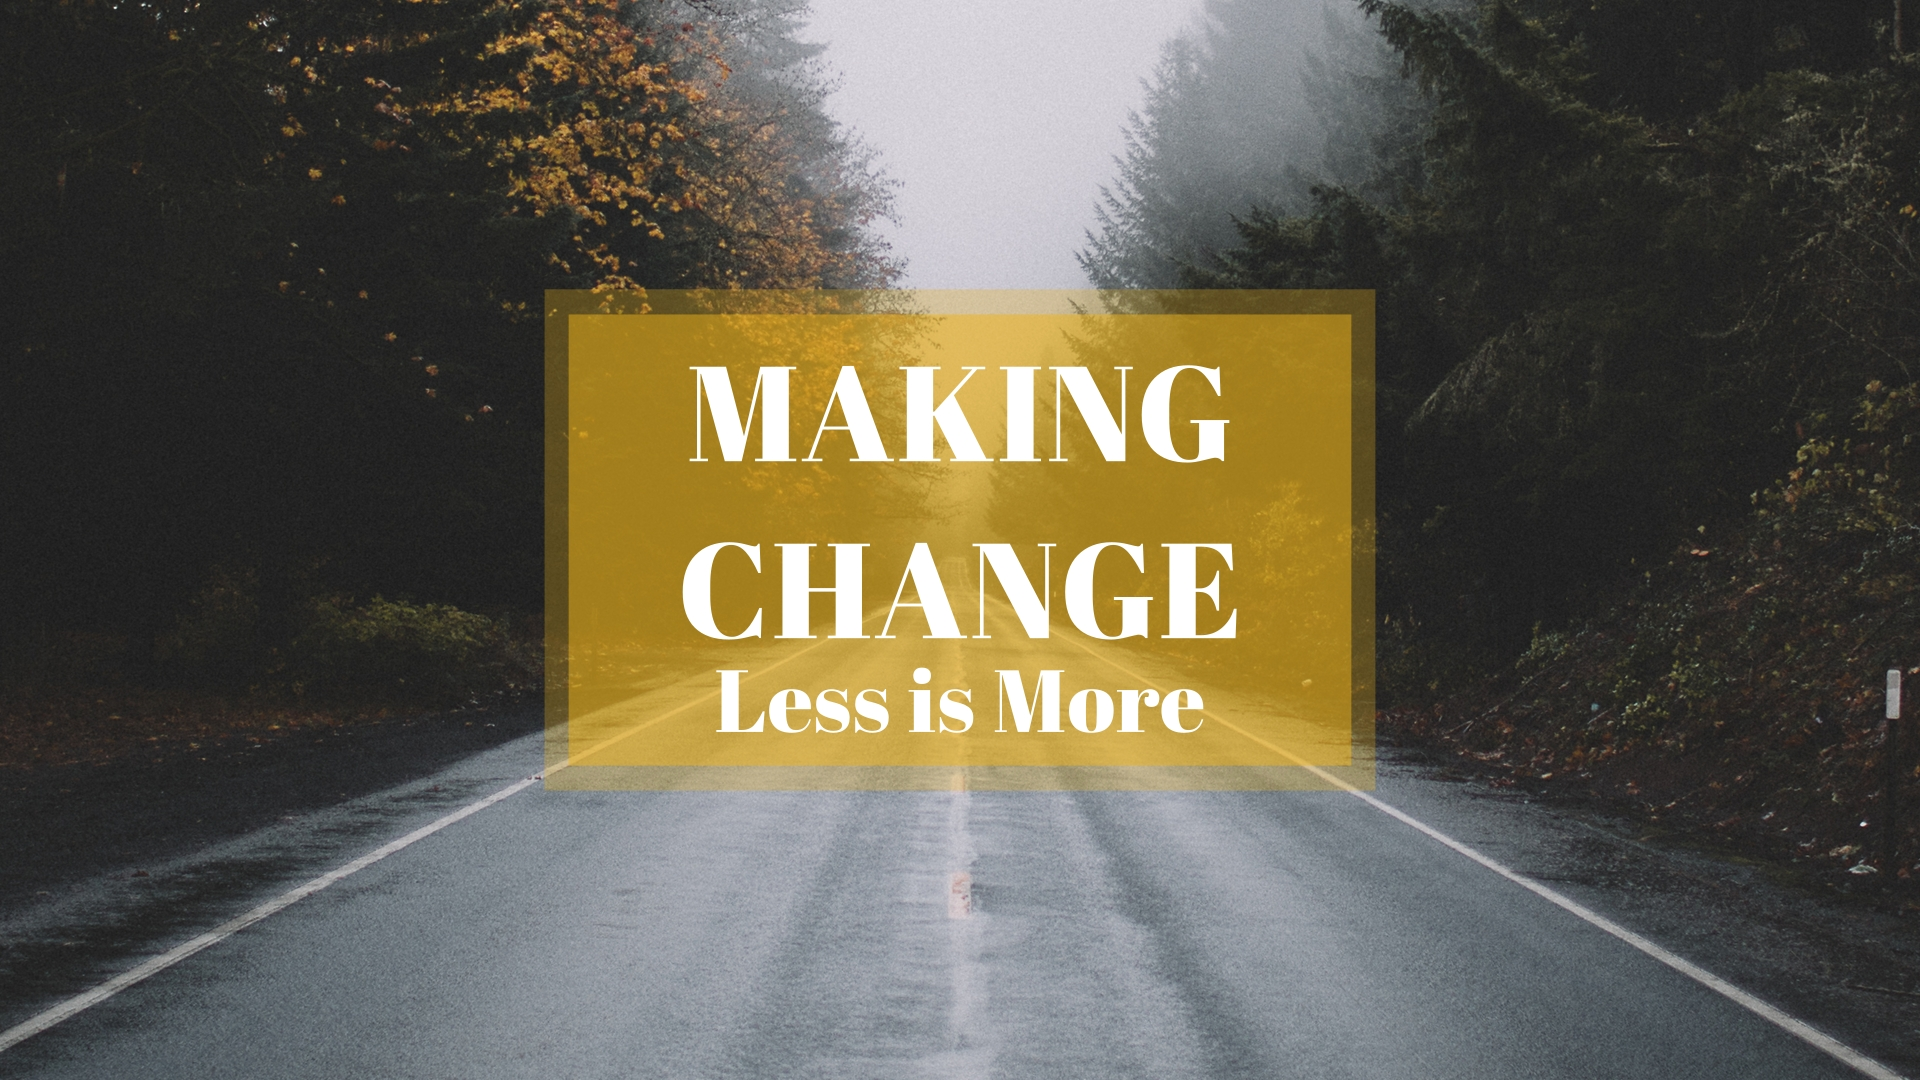 Making Change: Less is More